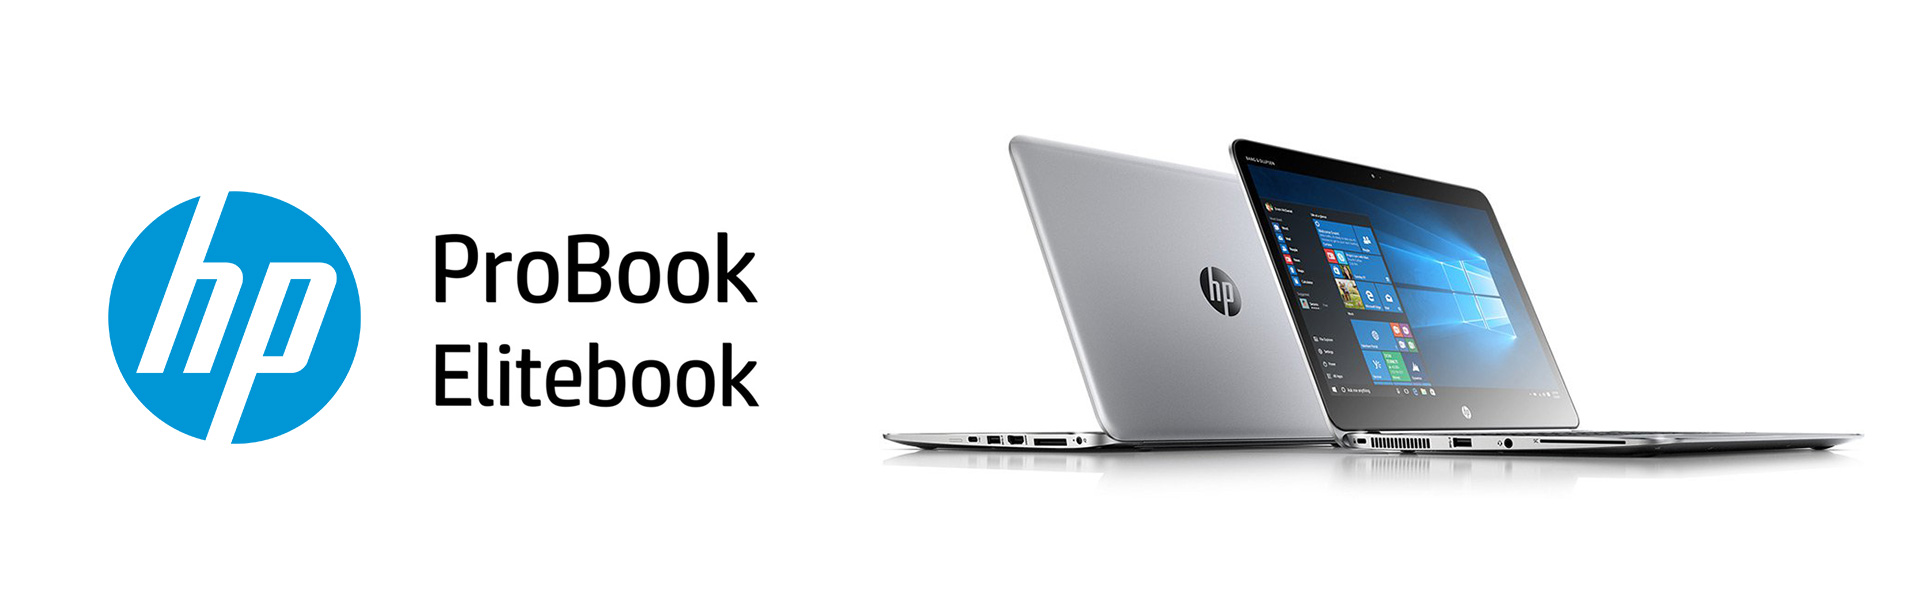 banniere-hp-probook-guide-trade-discount